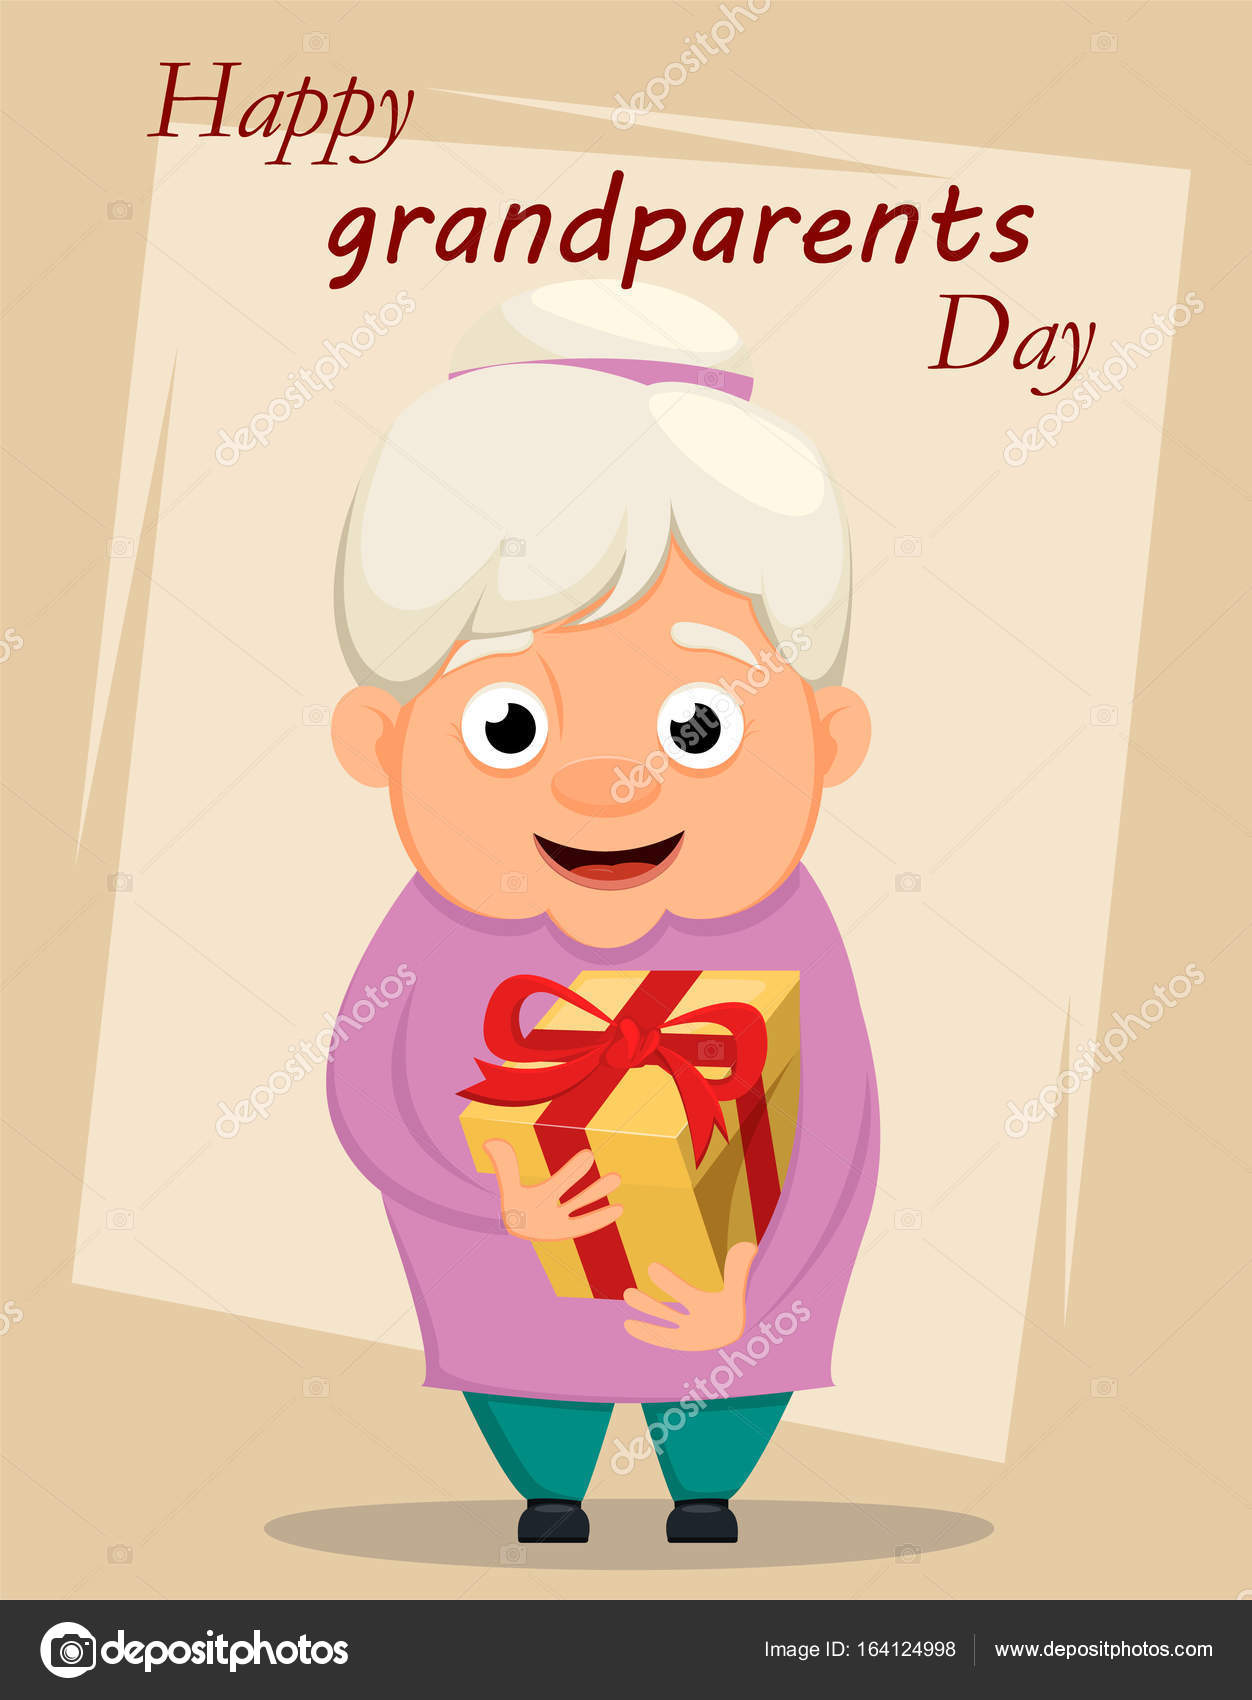 Grandparents day greeting card grandmother holding gift box ve grandparents day greeting card grandmother holding gift box ve stock vector m4hsunfo